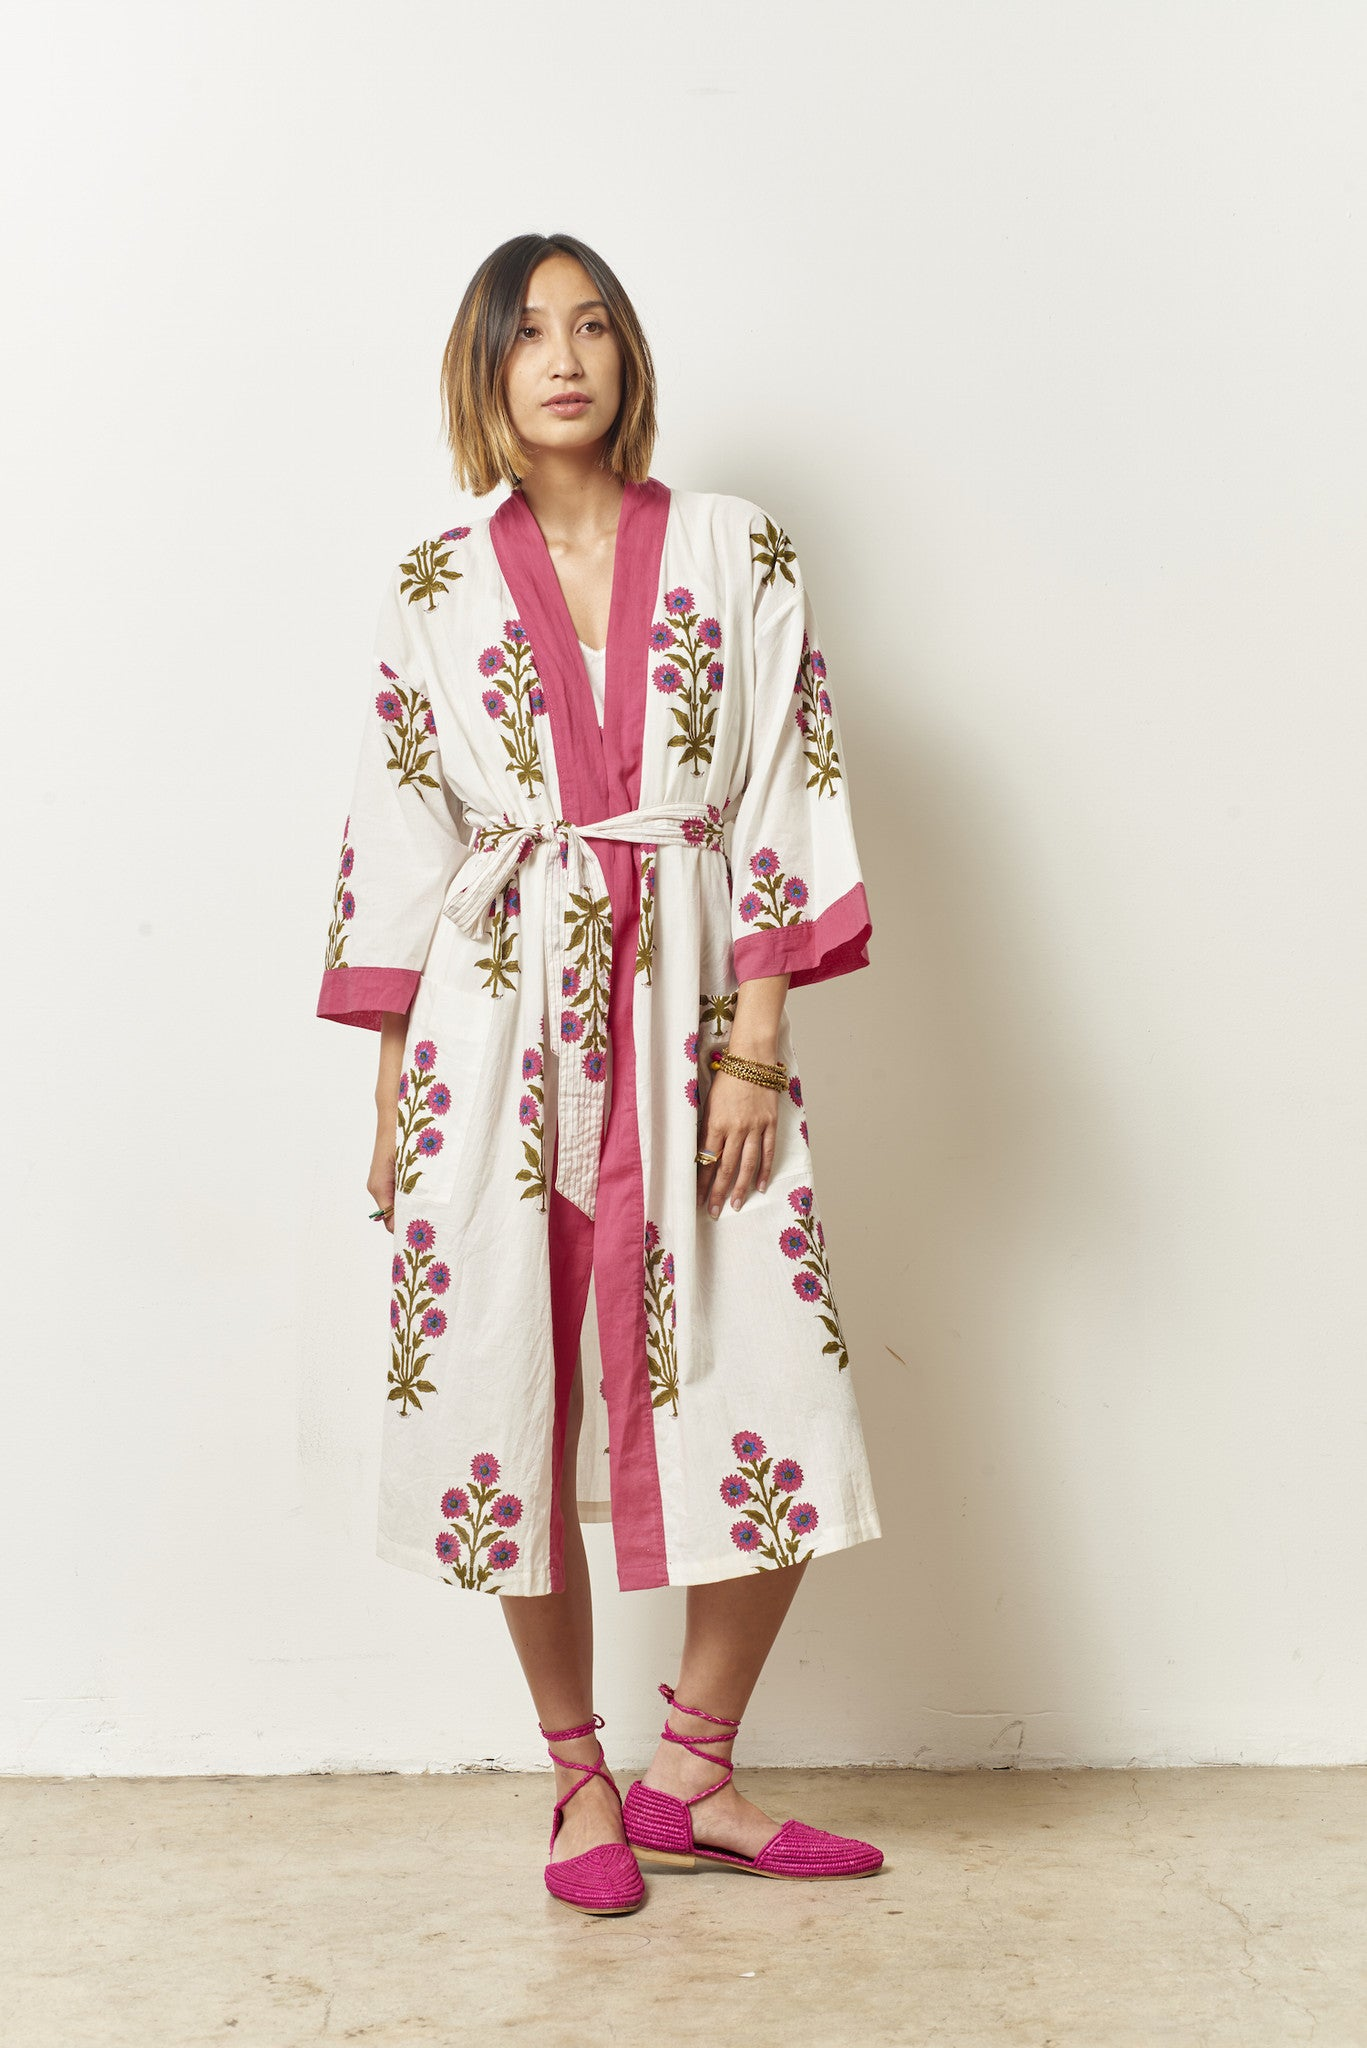 TORY Cotton robe in Block Printed Pom floral